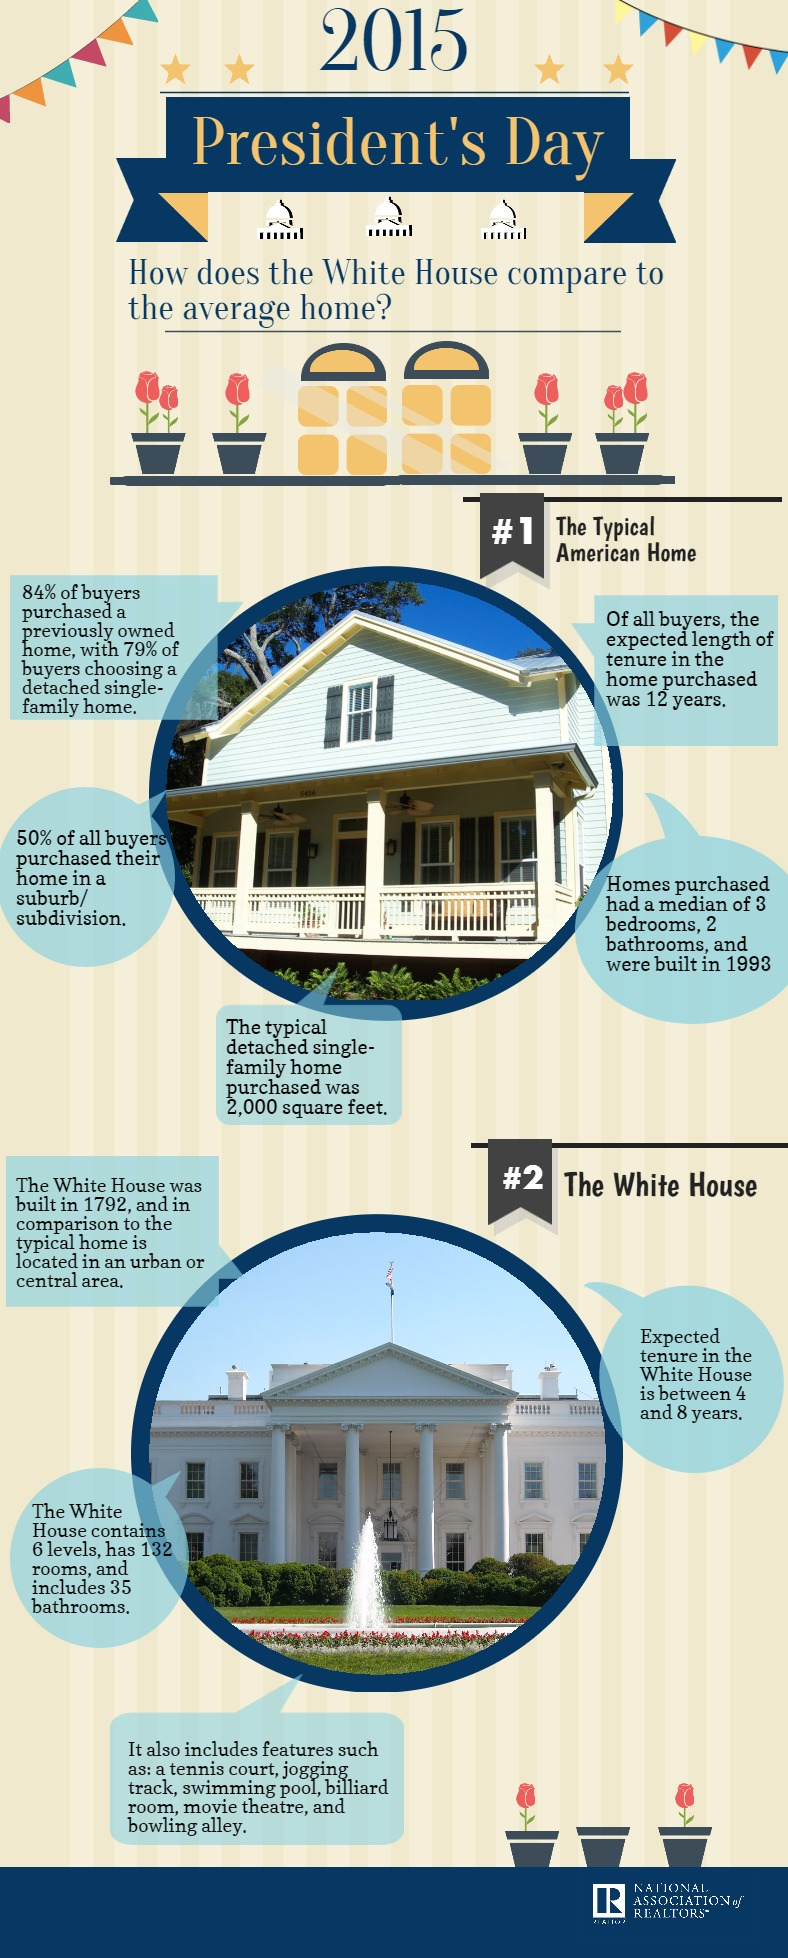 Compare White House to American homes